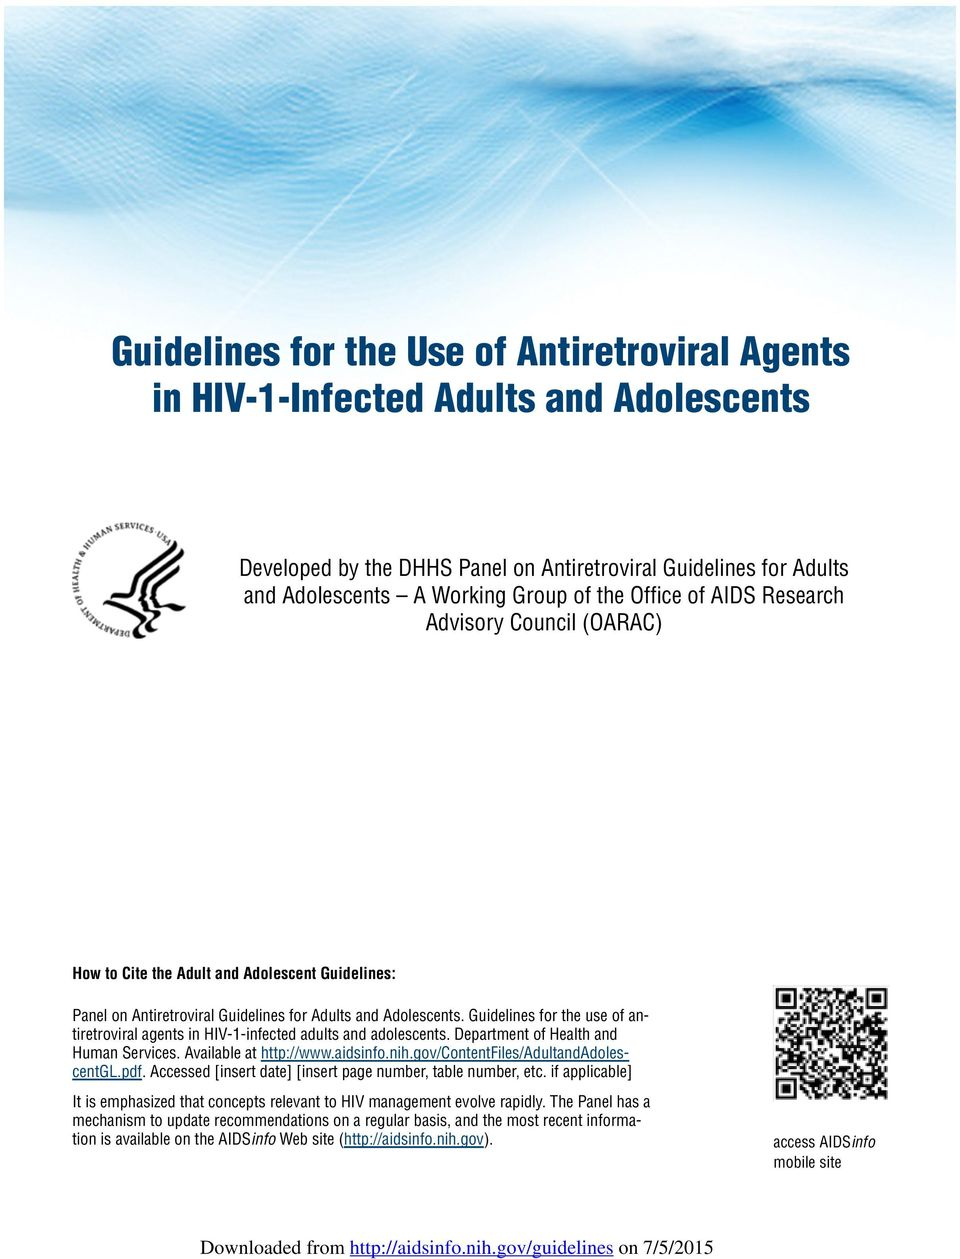 Guidelines for the use of antiretroviral agents in HIV-1-infected adults and adolescents. Department of Health and Human Services. Available at http://www.aidsinfo.nih.